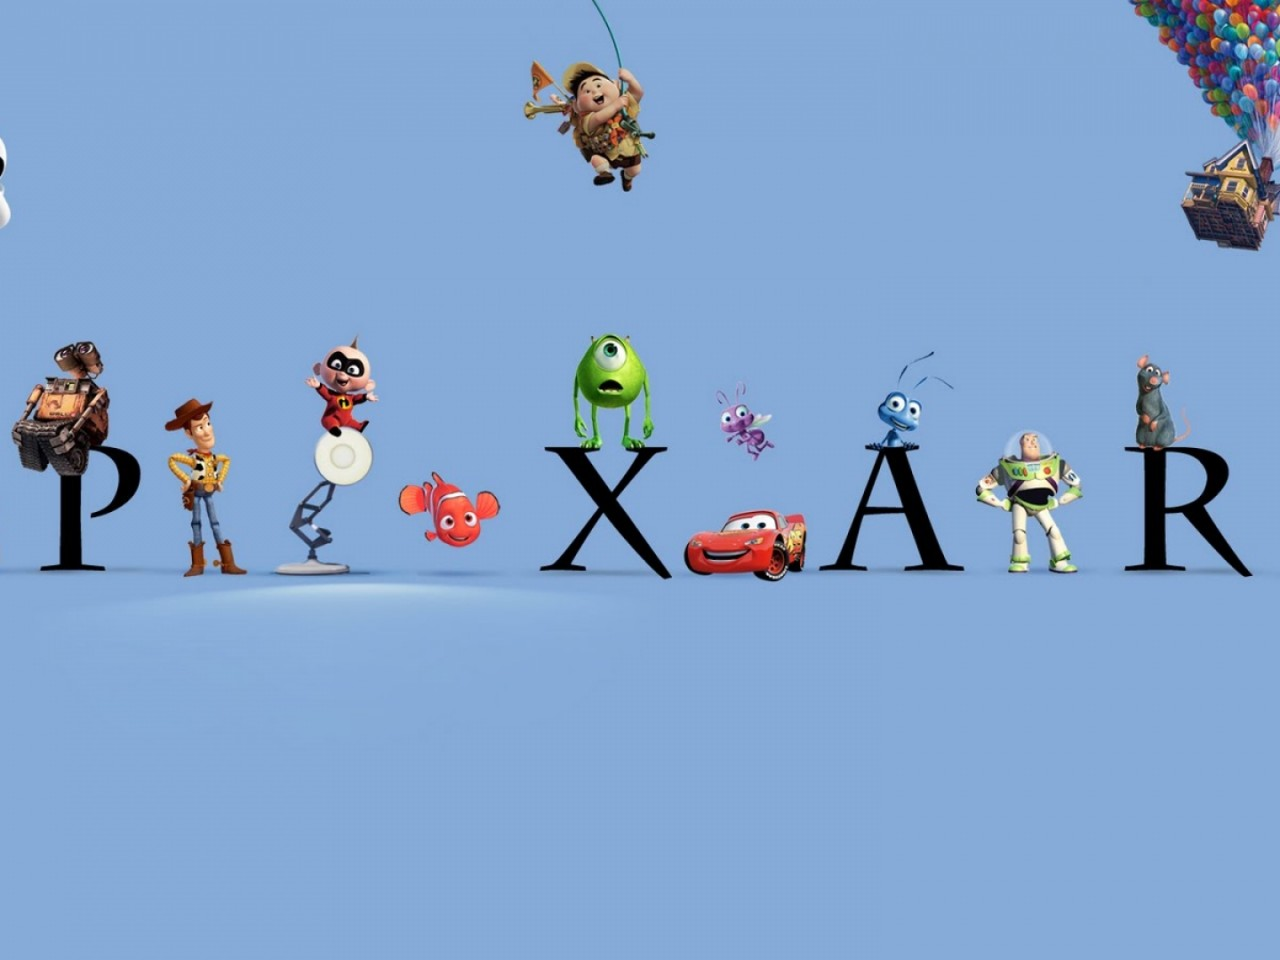 Andrestoons pixar lamp png wallpaper .the legend of lasseter and the